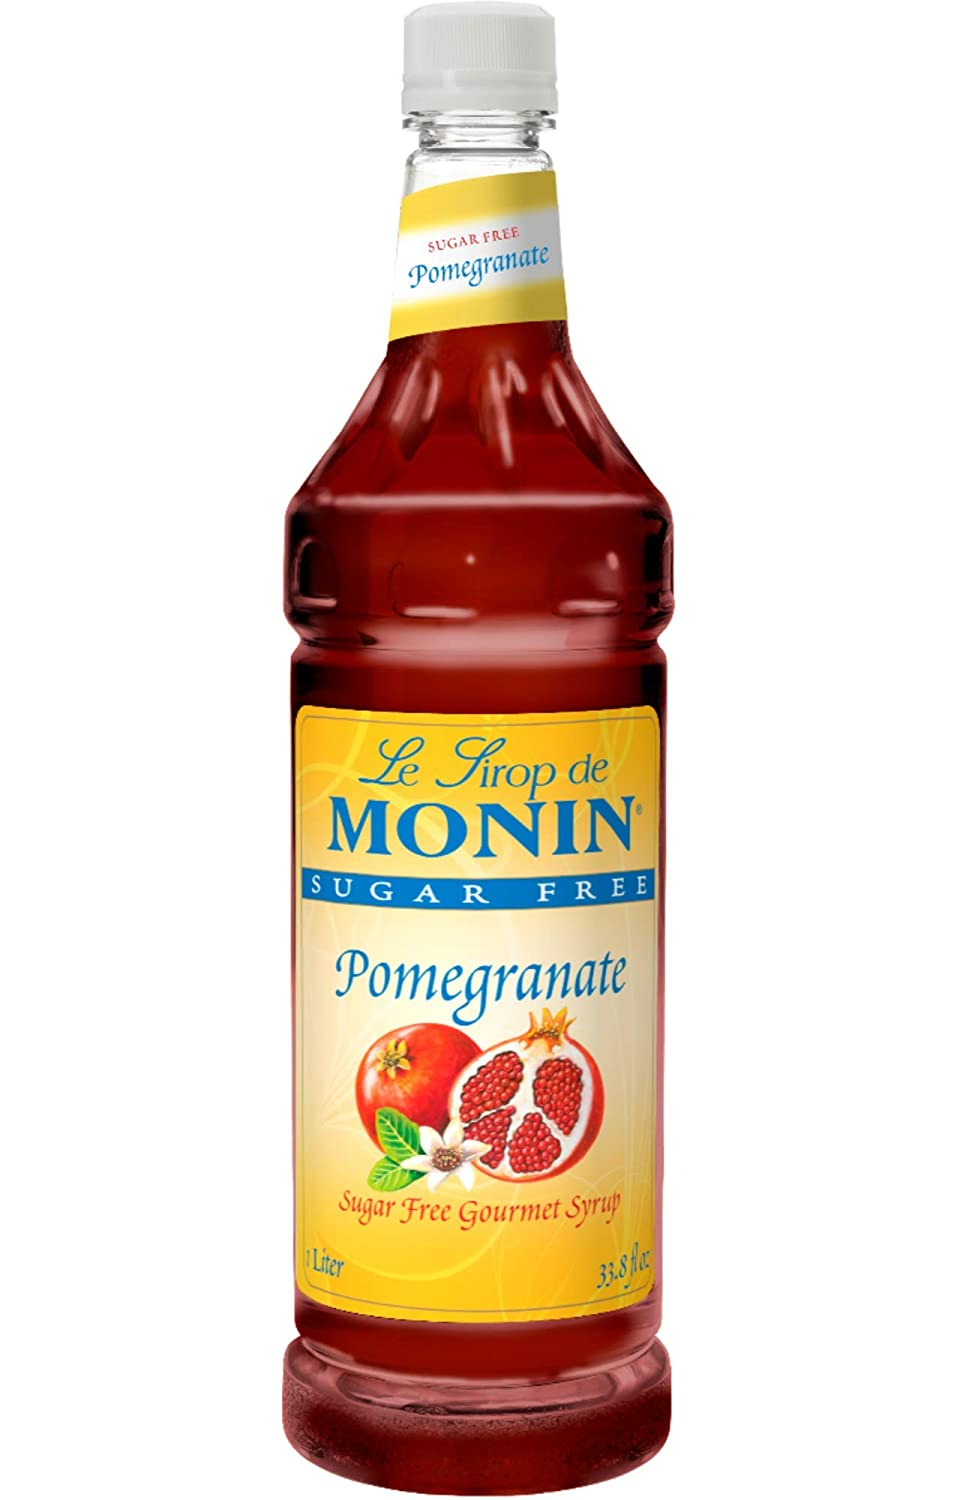 Monin Sugar Free Pomegranate Syrup Max Beauty products 71% OFF Plastic 33.8-Ounce 1 Bottle